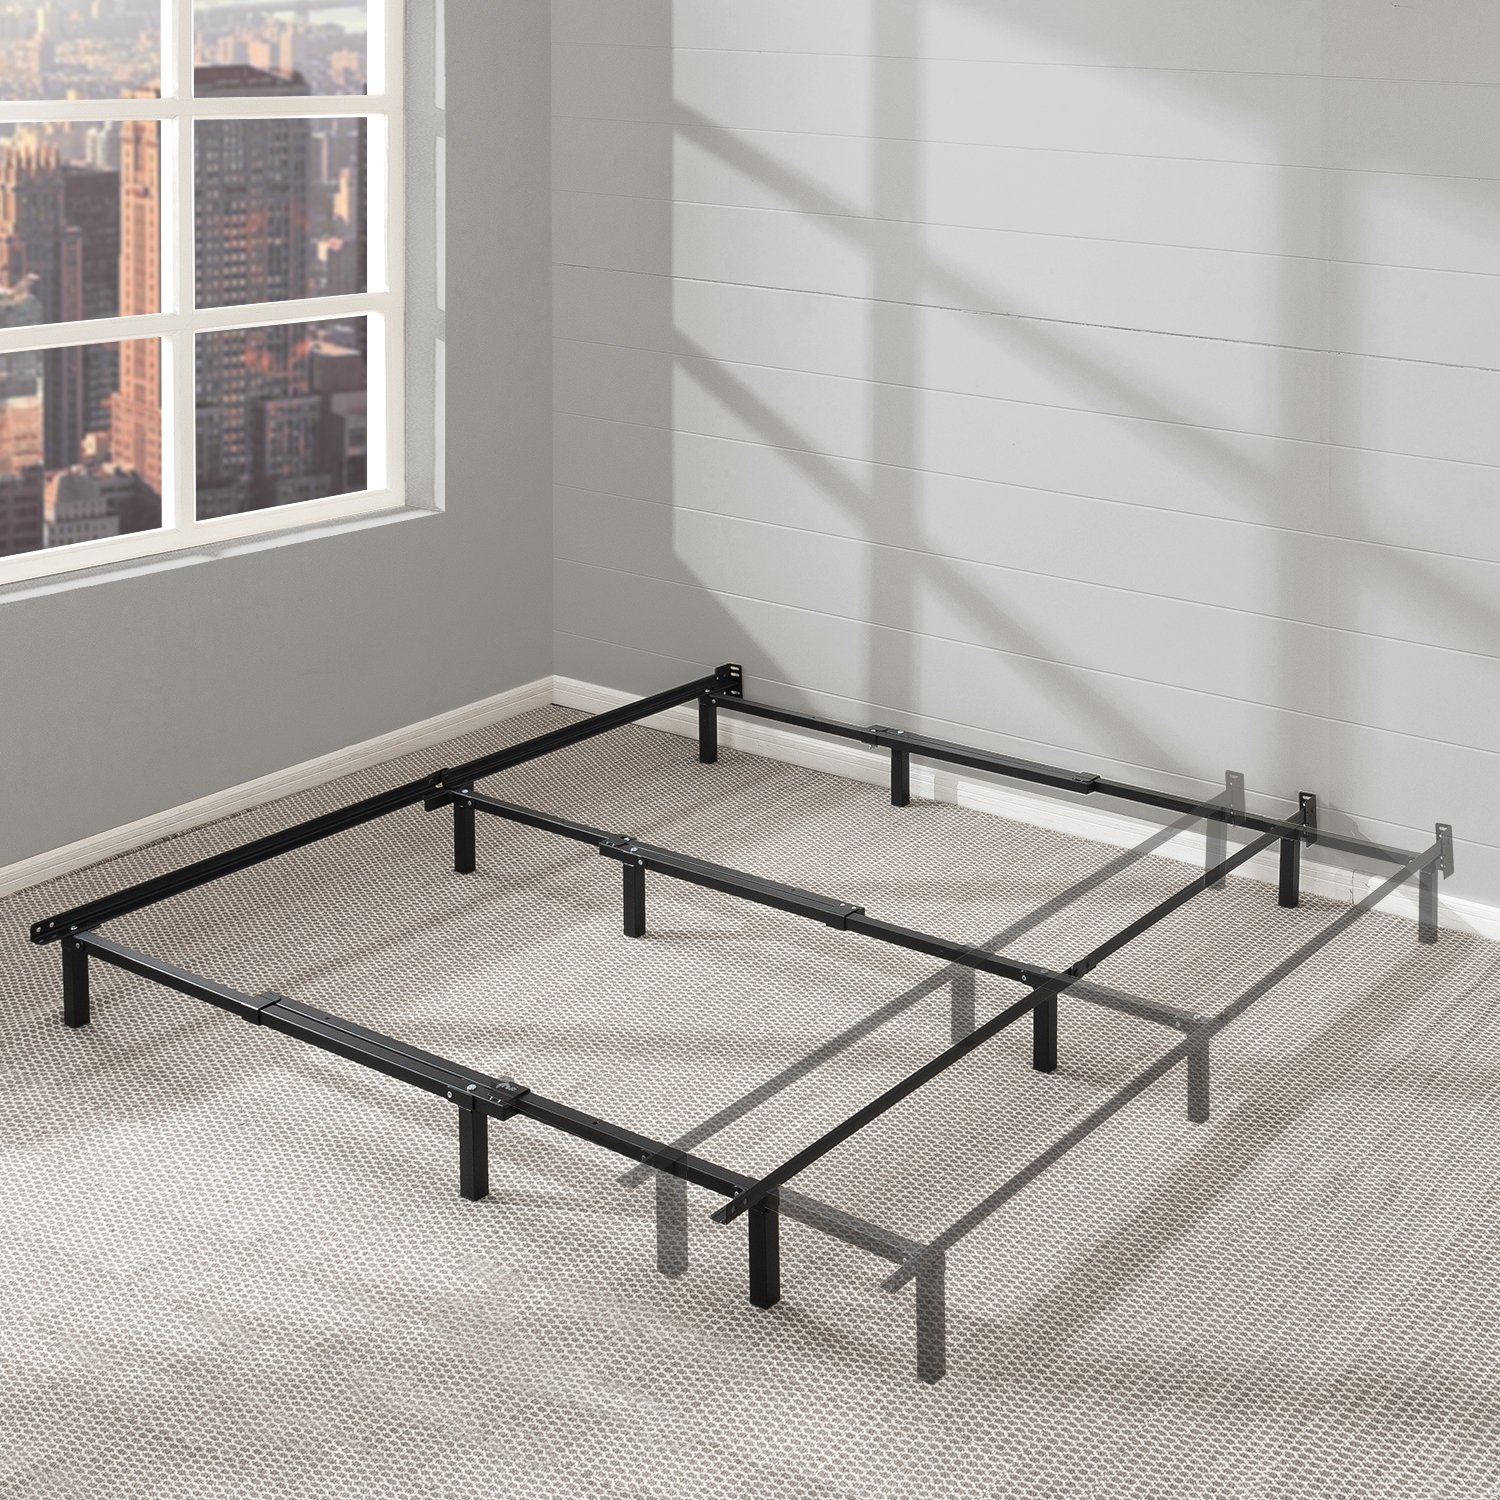 Best Price Mattress Adjustable Bed Frame – 7 Metal Platform Bed Frame w Heavy Duty Steel Construction Compatible with Twin, Full, and Queen Size